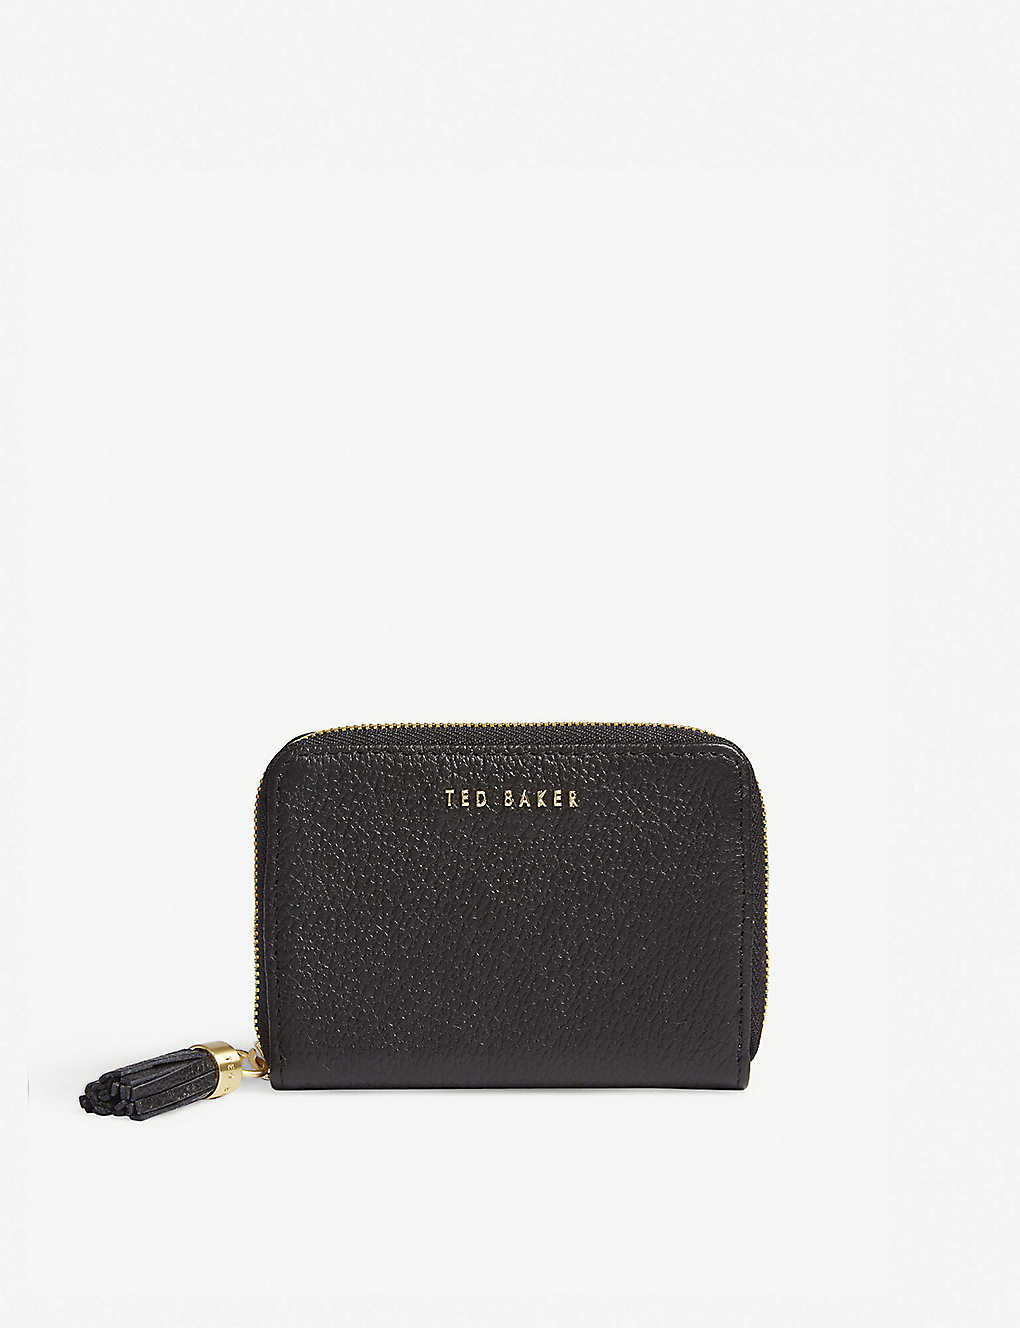 4487679b2d8 TED BAKER - Sabel small grained leather purse | Selfridges.com